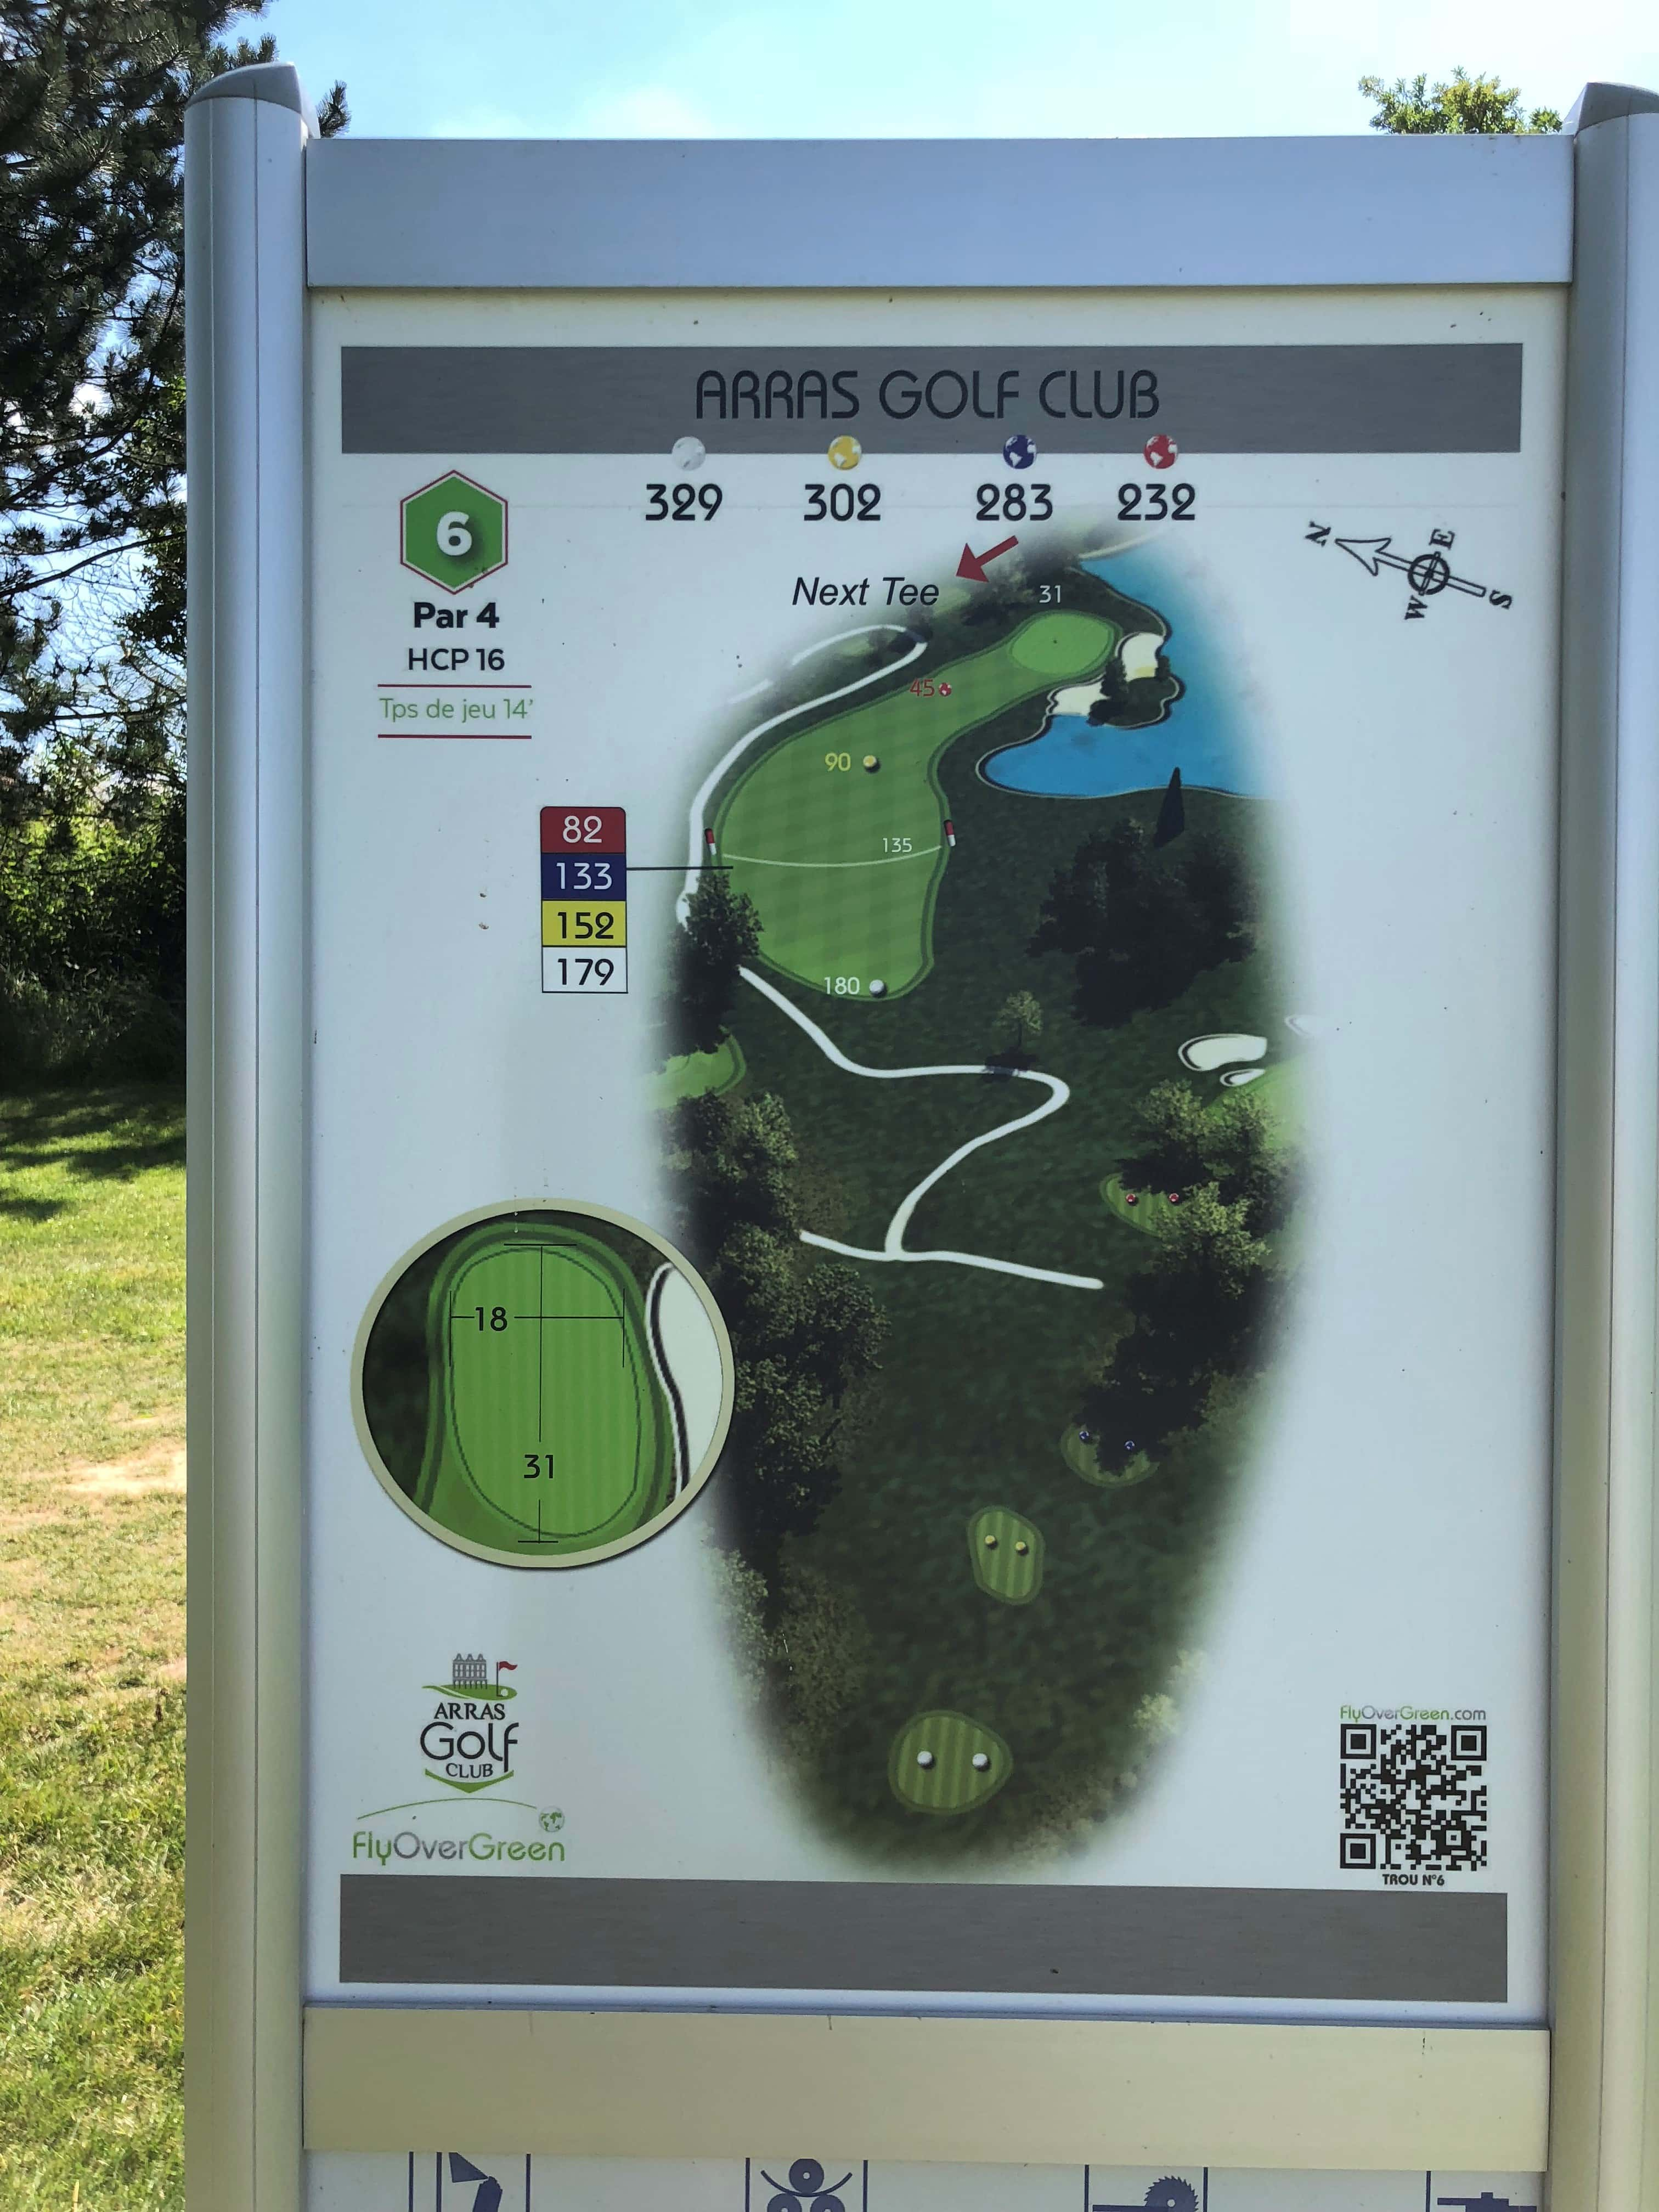 Tee 6, Arras Golf Club, Arras Golf Resort, Parcours La Vallée, Distance 329m, Distance 302m, Distance 283m, Distance 232m, Par 4